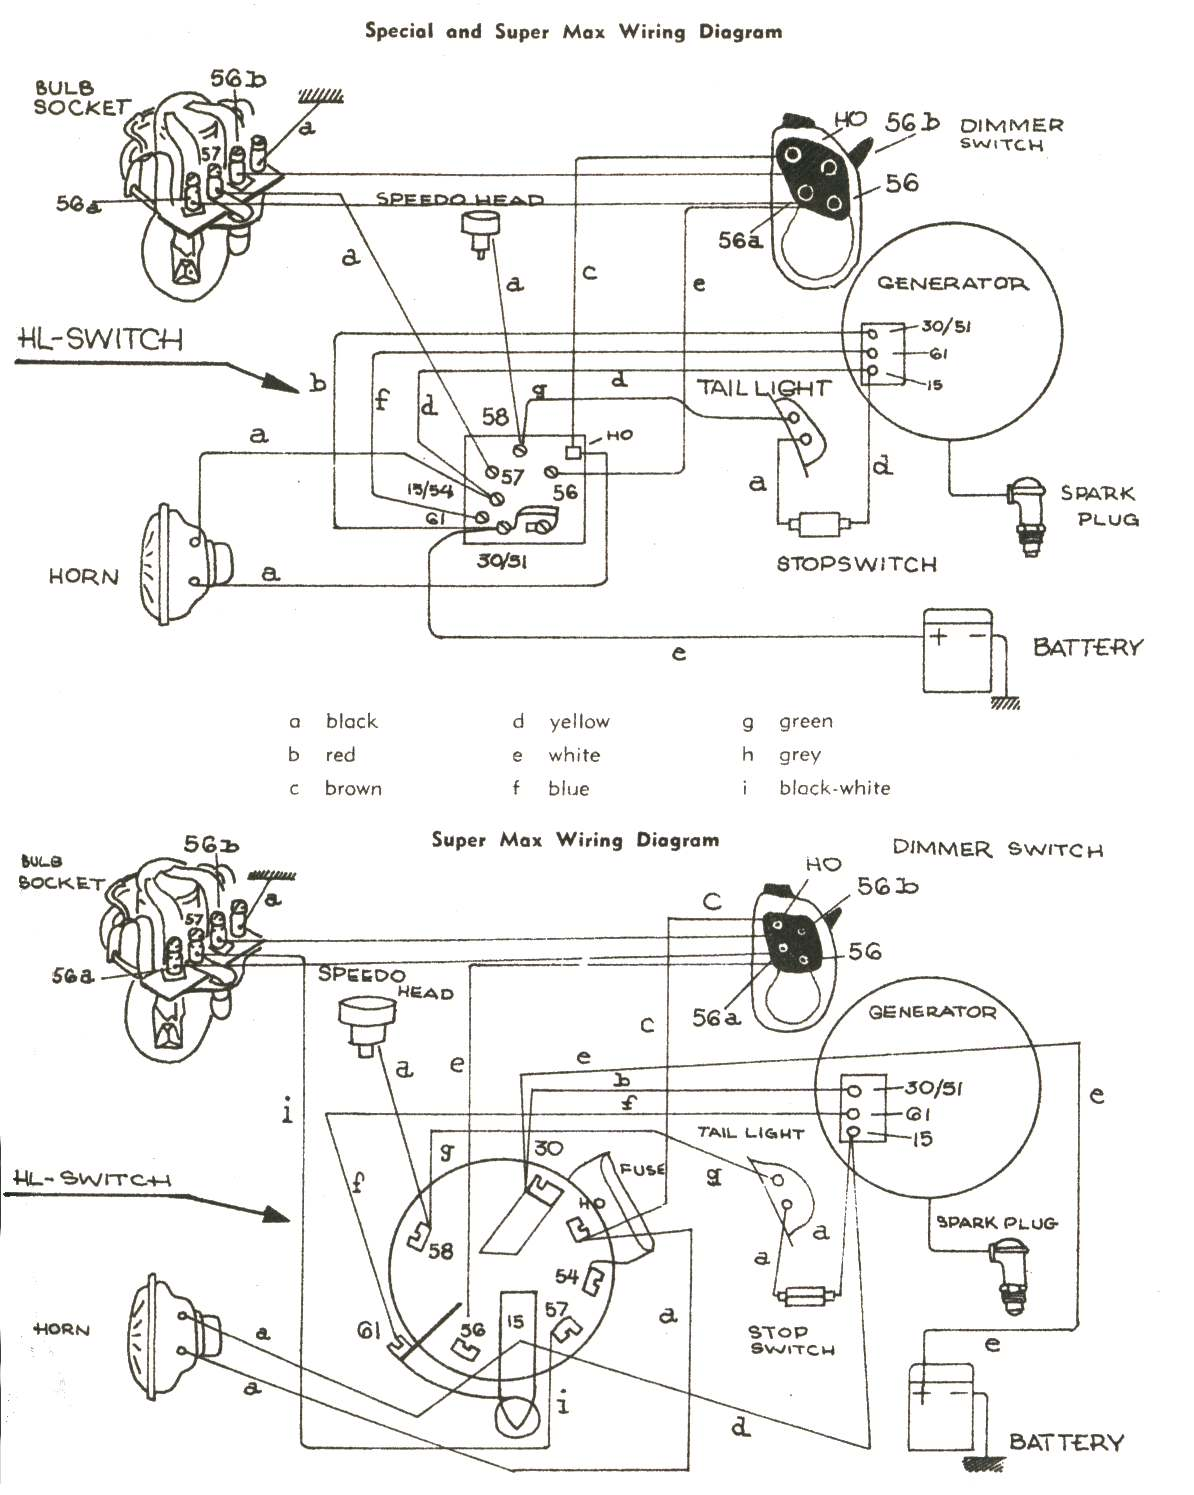 Supermax Wiring Diagram : 23 Wiring Diagram Images